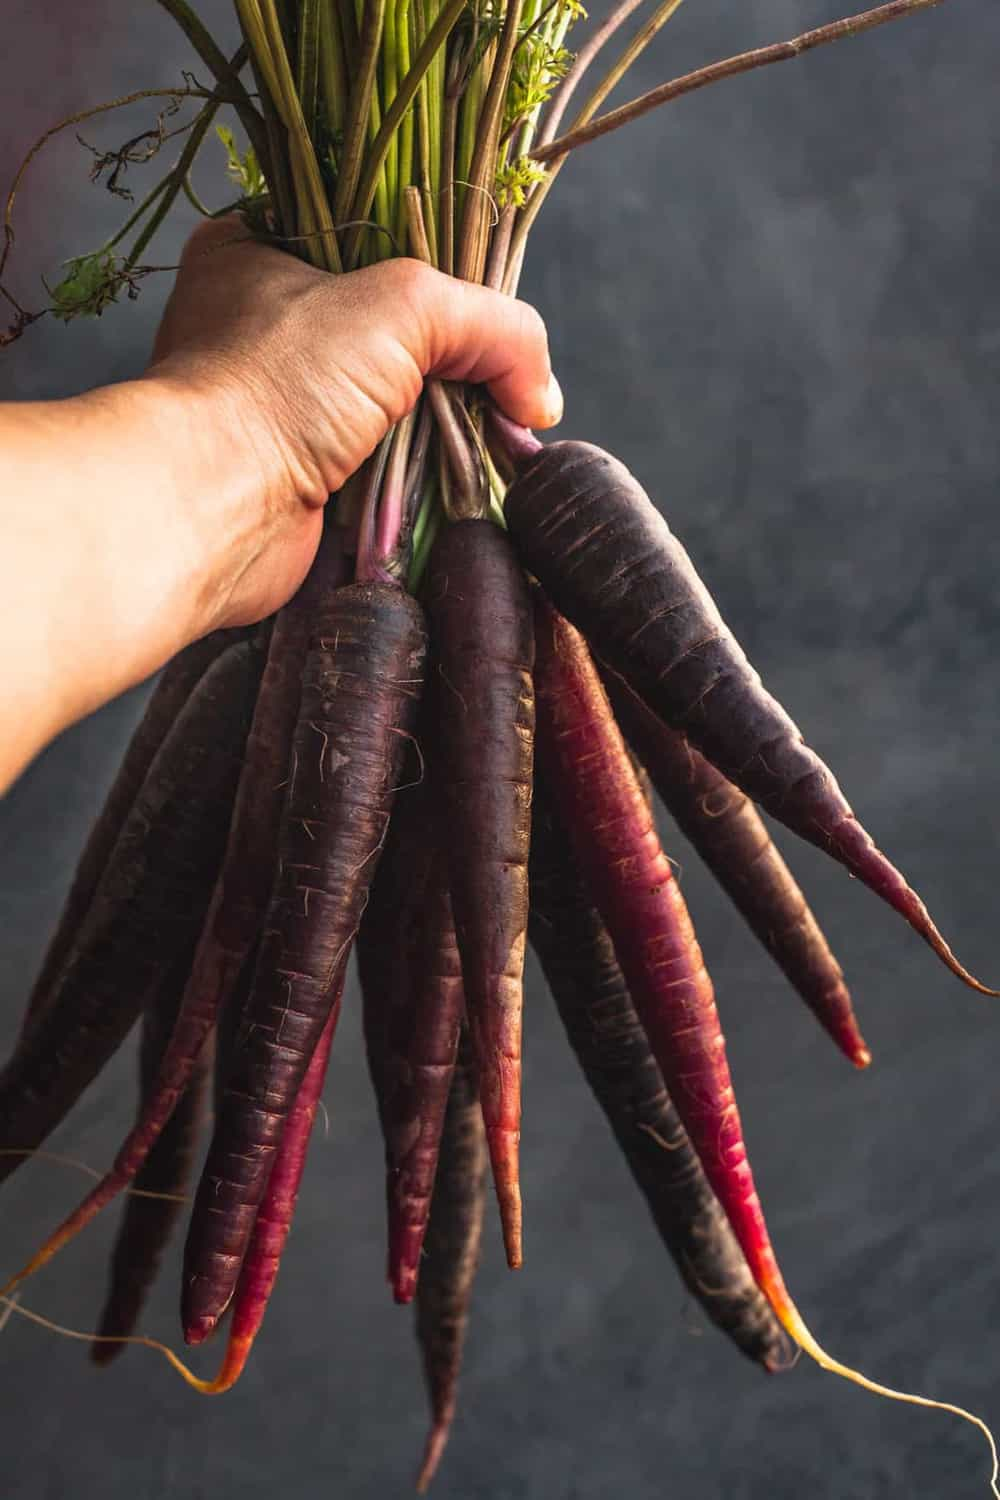 Holding a bunch of purple carrots, with a grey background.